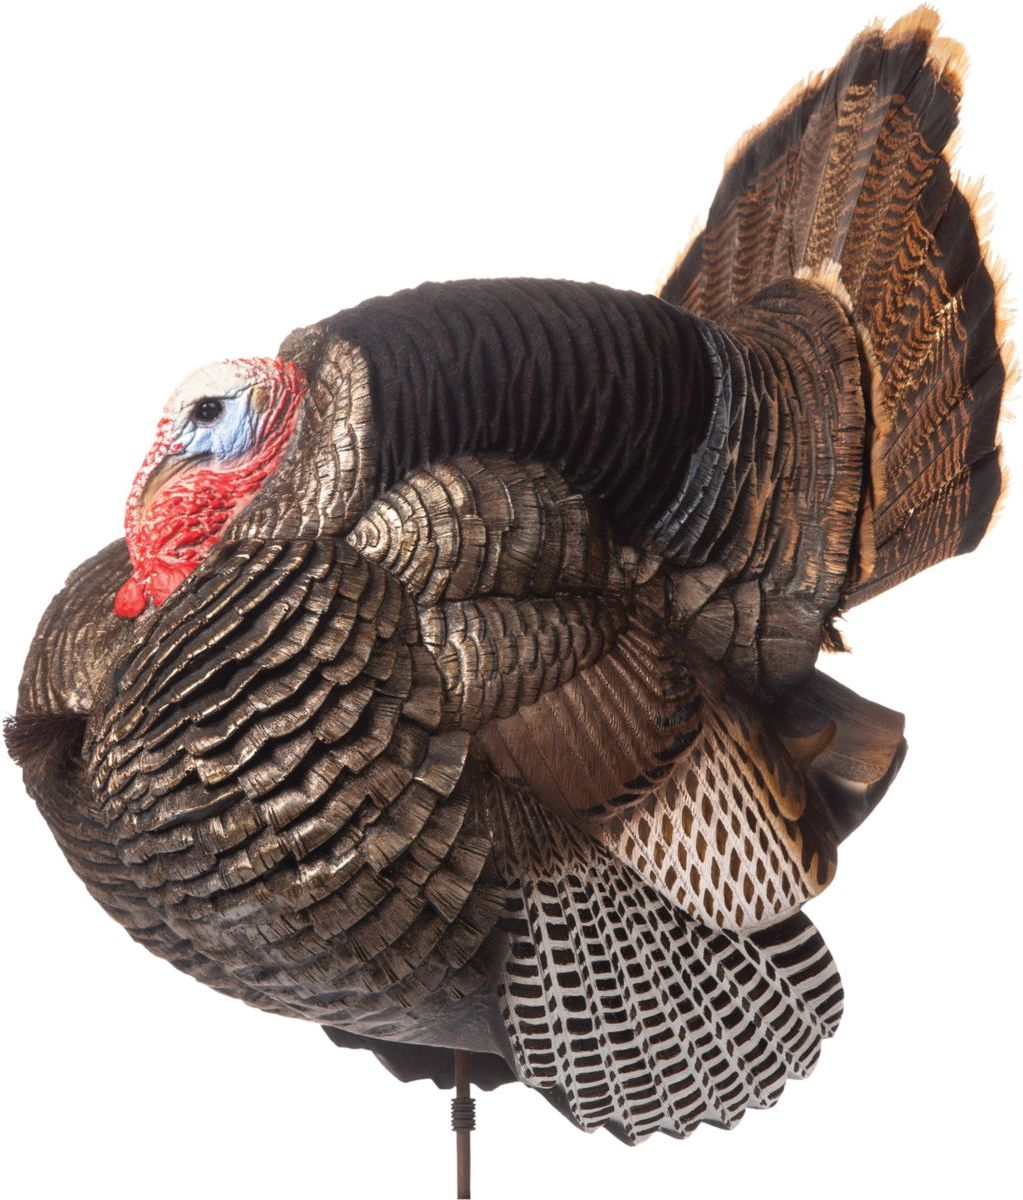 Dave Smith Decoys® Jake Strutter Turkey Decoy